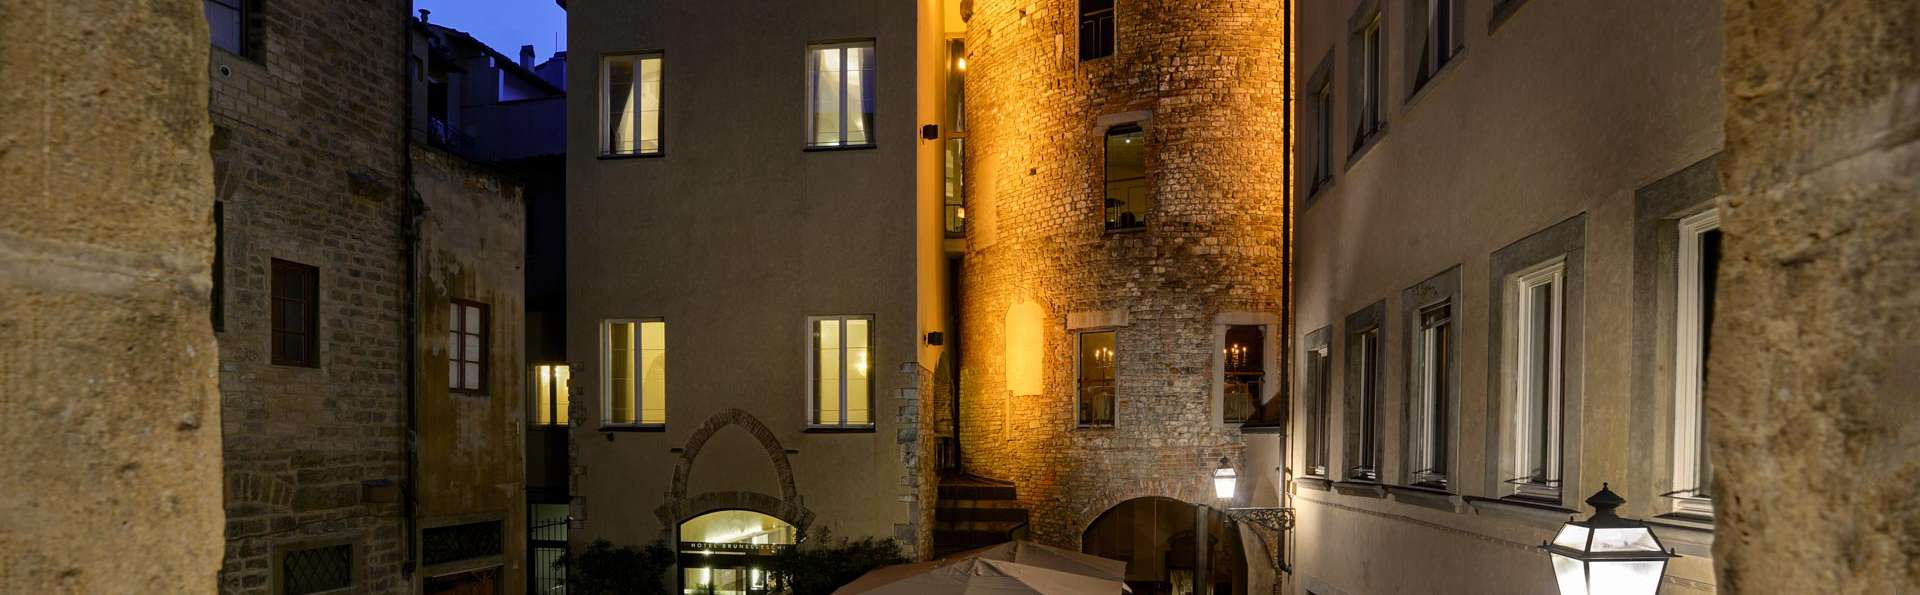 Hotel Brunelleschi - EDIT_TERRACE_01.jpg